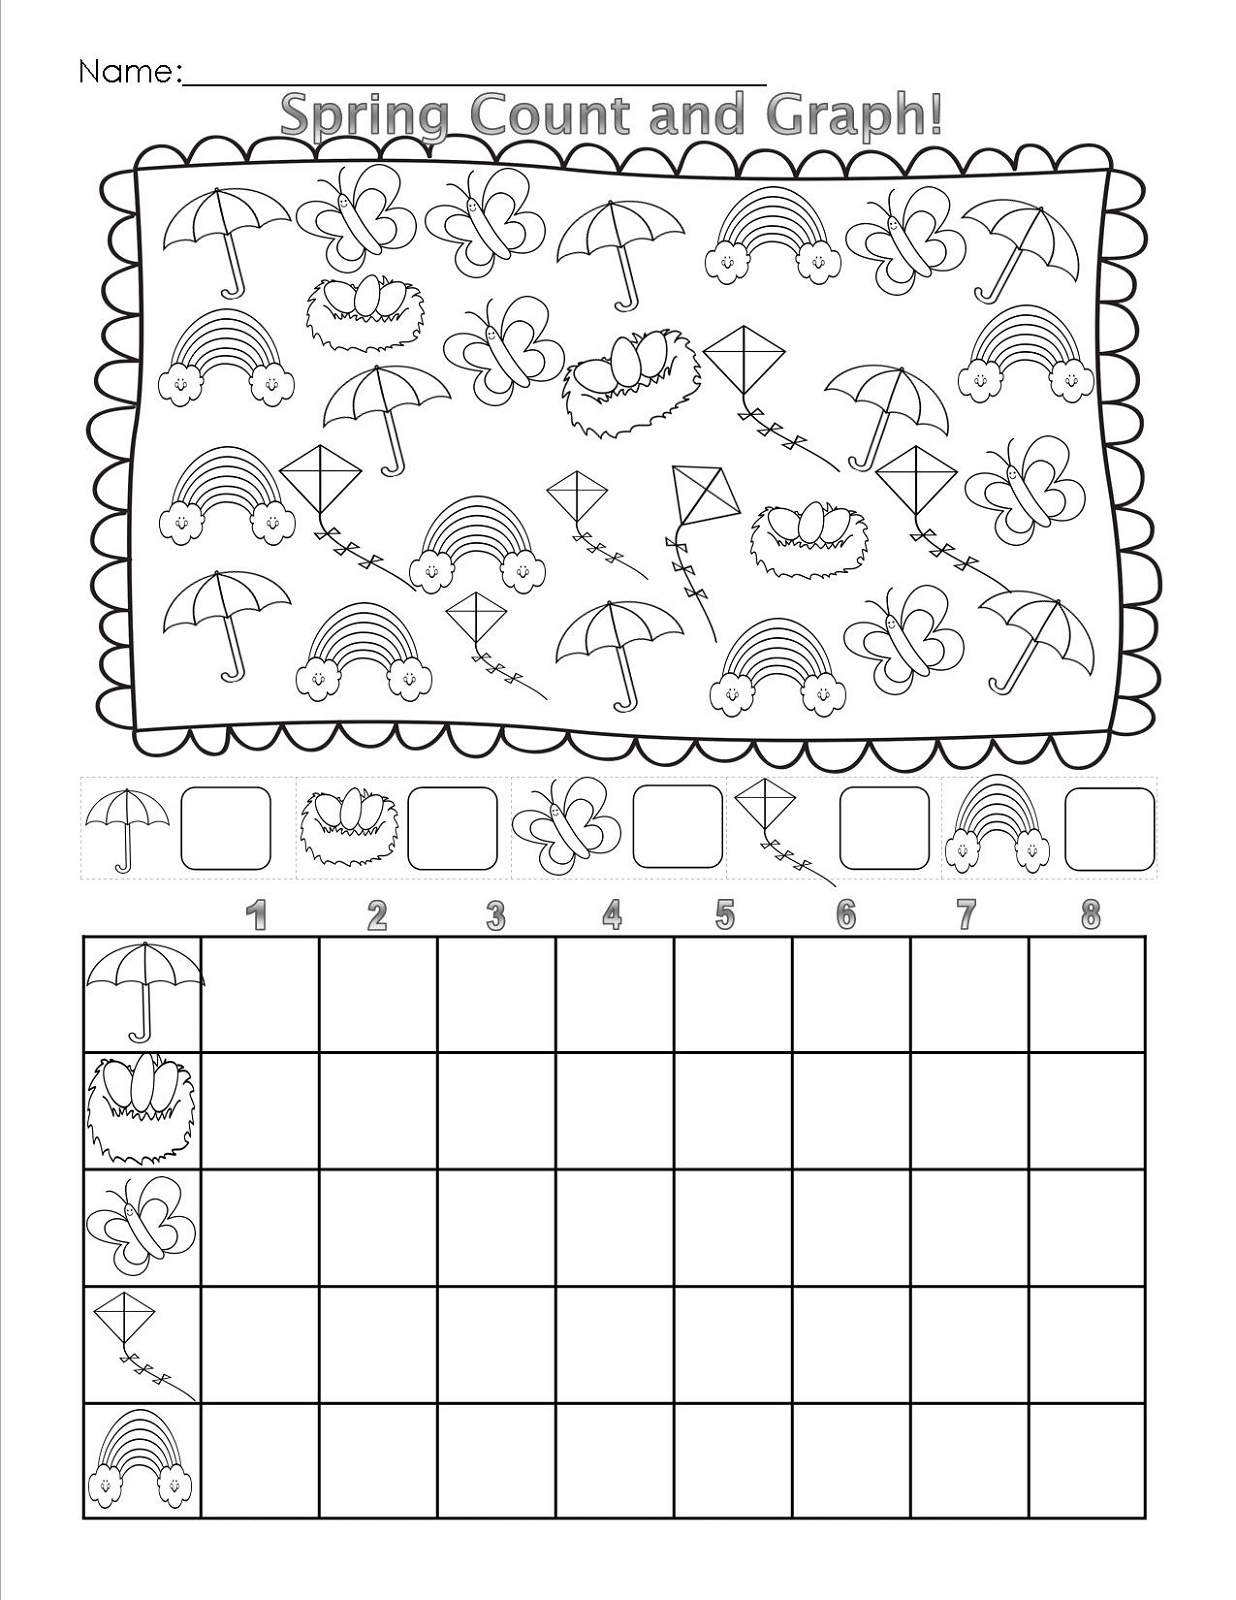 Spring Tally Chart Worksheets